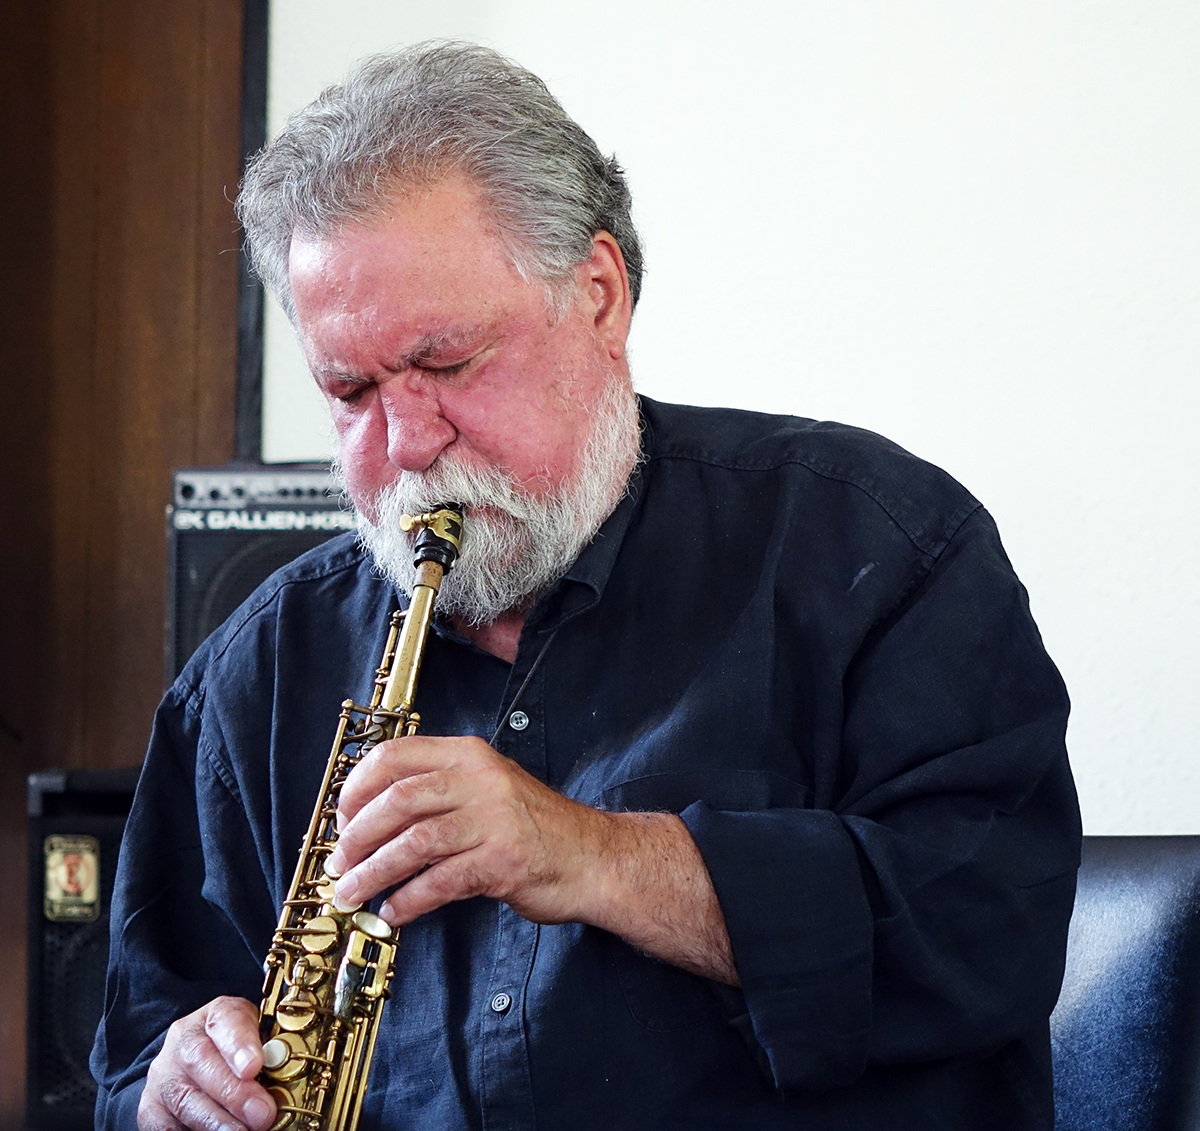 Evan Parker at Guelph Jazz Festival 2015